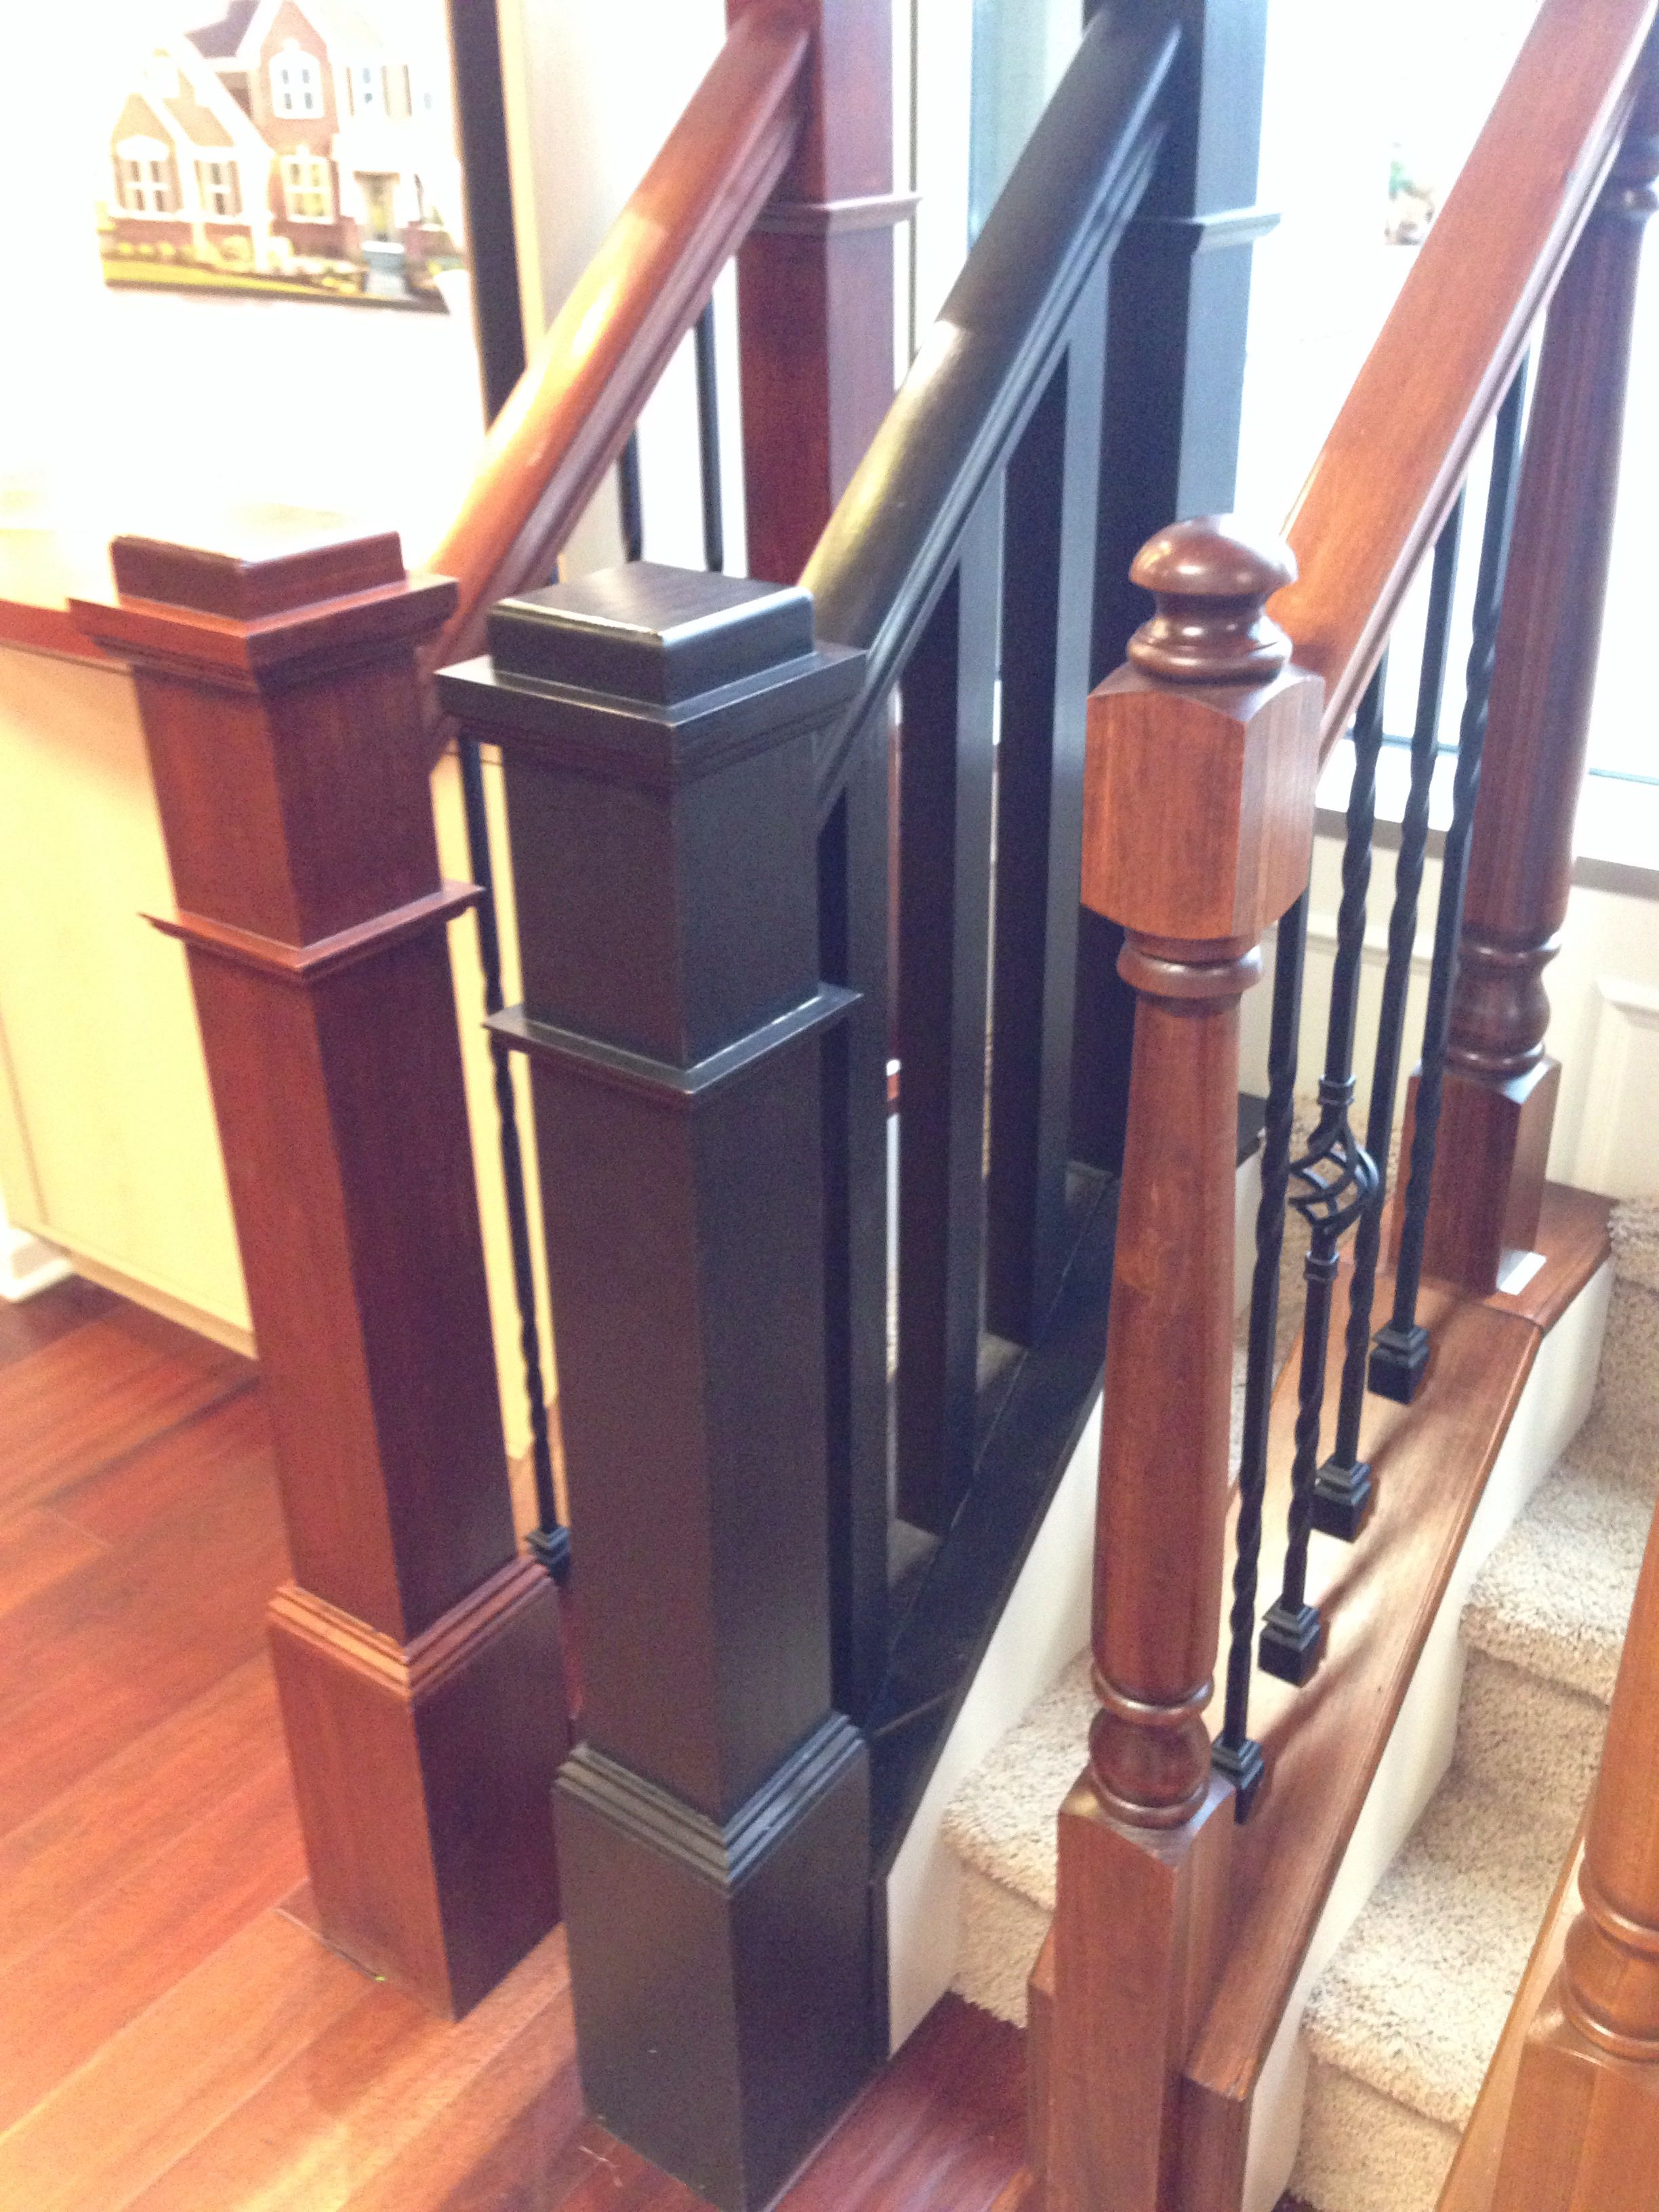 Middle Stair Railing Box Newel Posts In Sarsaparilla Stain Staircase Makeover Stair Posts Interior Design Living Room